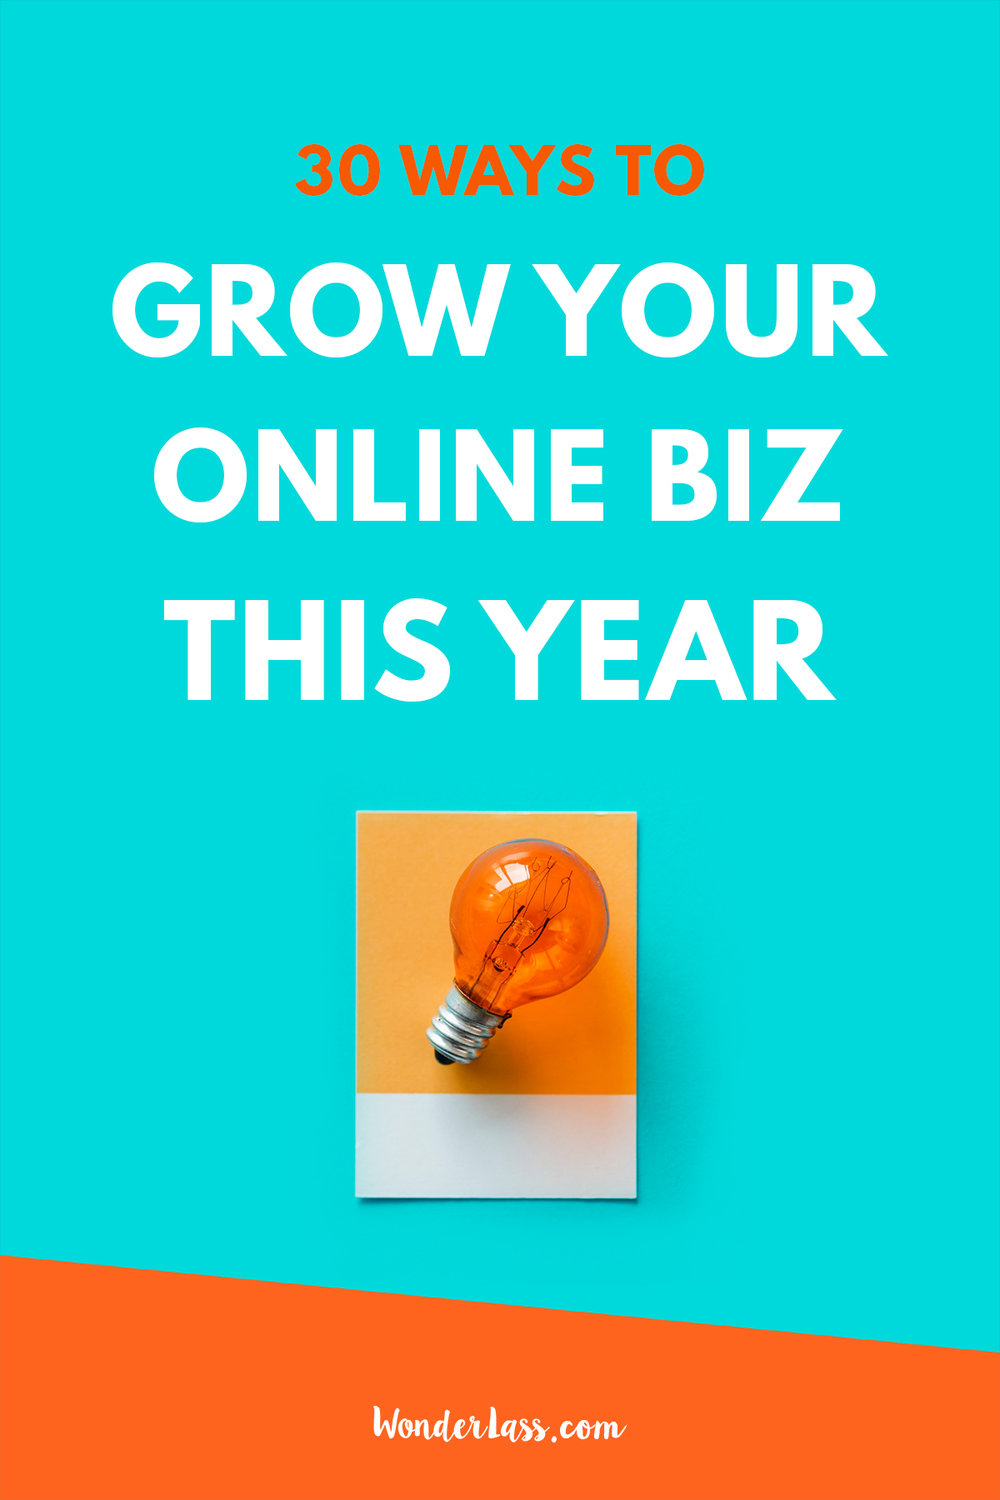 30 Ways to Grow Your Online Business This Year | Wonderlass  #onlinebusiness #makepassiveincome #onlinemarketing